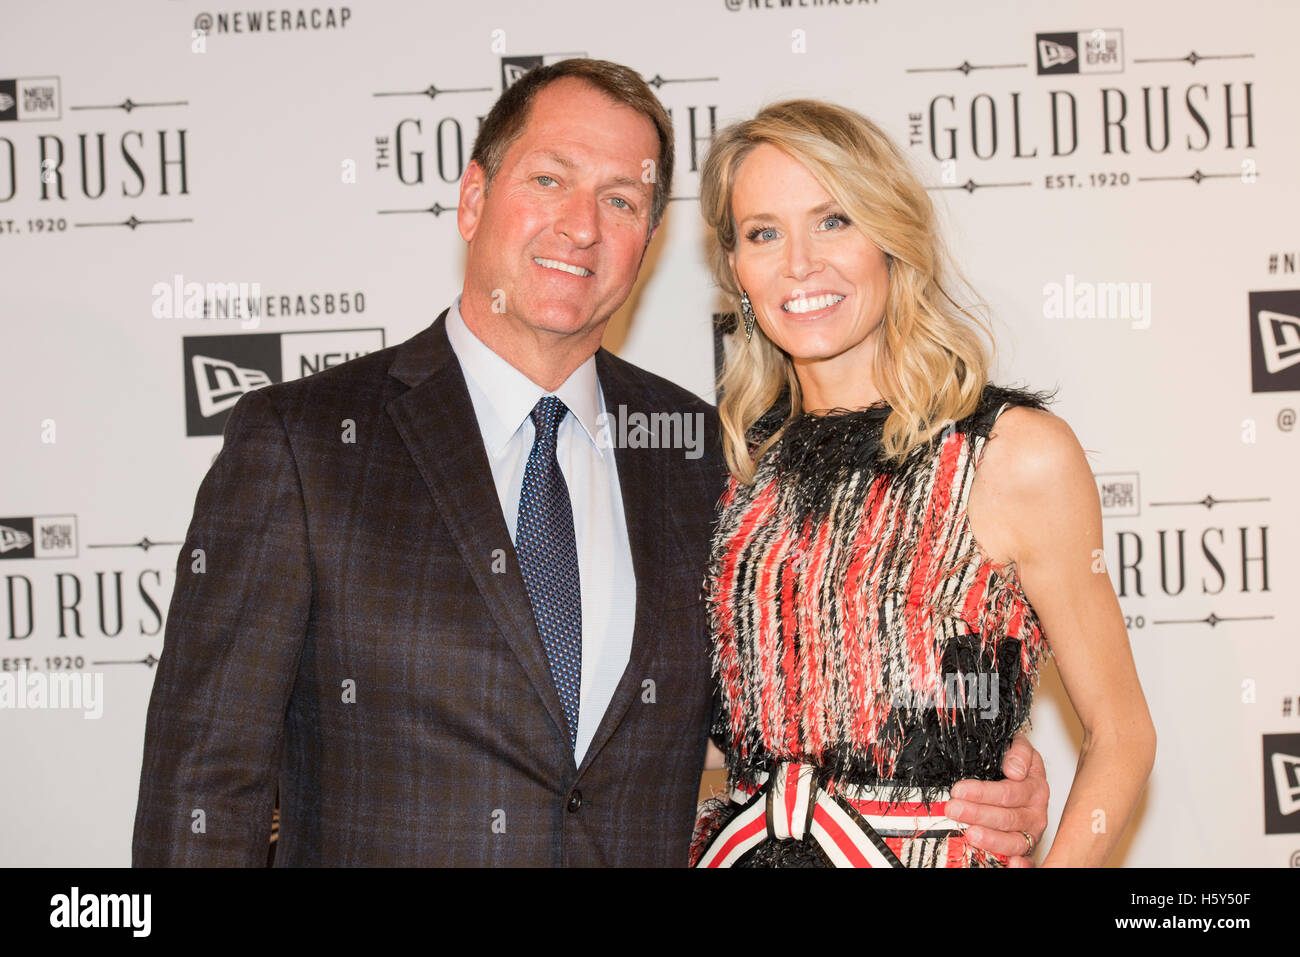 New Era Cap CEO Chris Kock arrives on the red carpet with wife Lindesy Koch  at 12a89114b9a